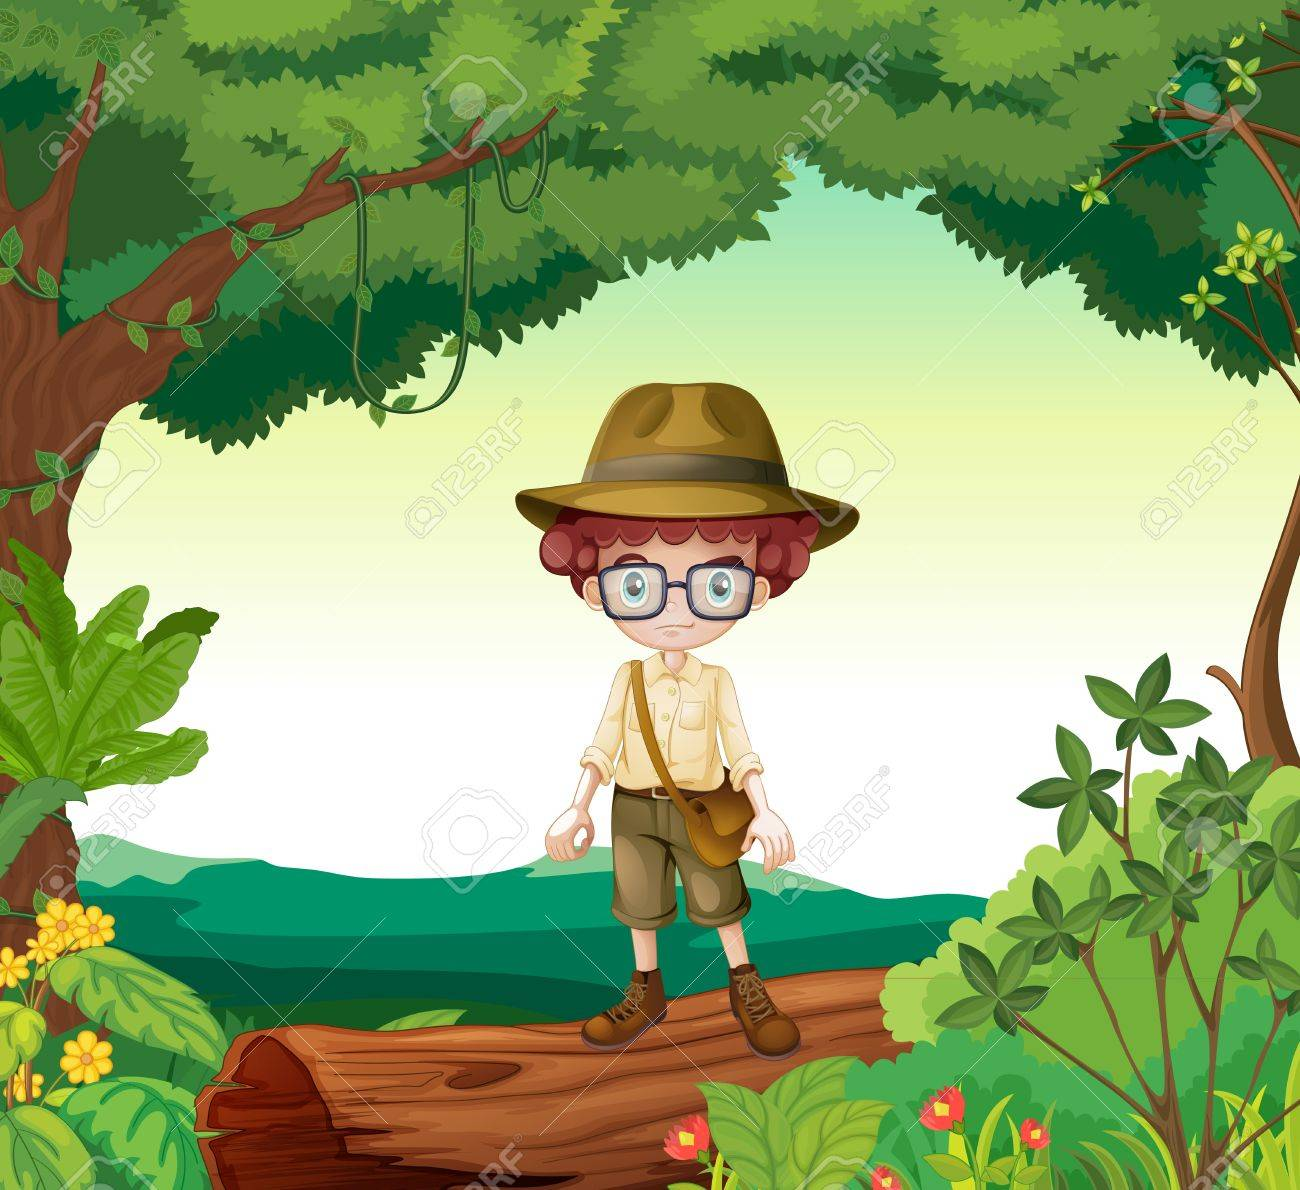 Illustration of a boy standing on a timber beam in a beautiful nature Stock Vector - 17036918